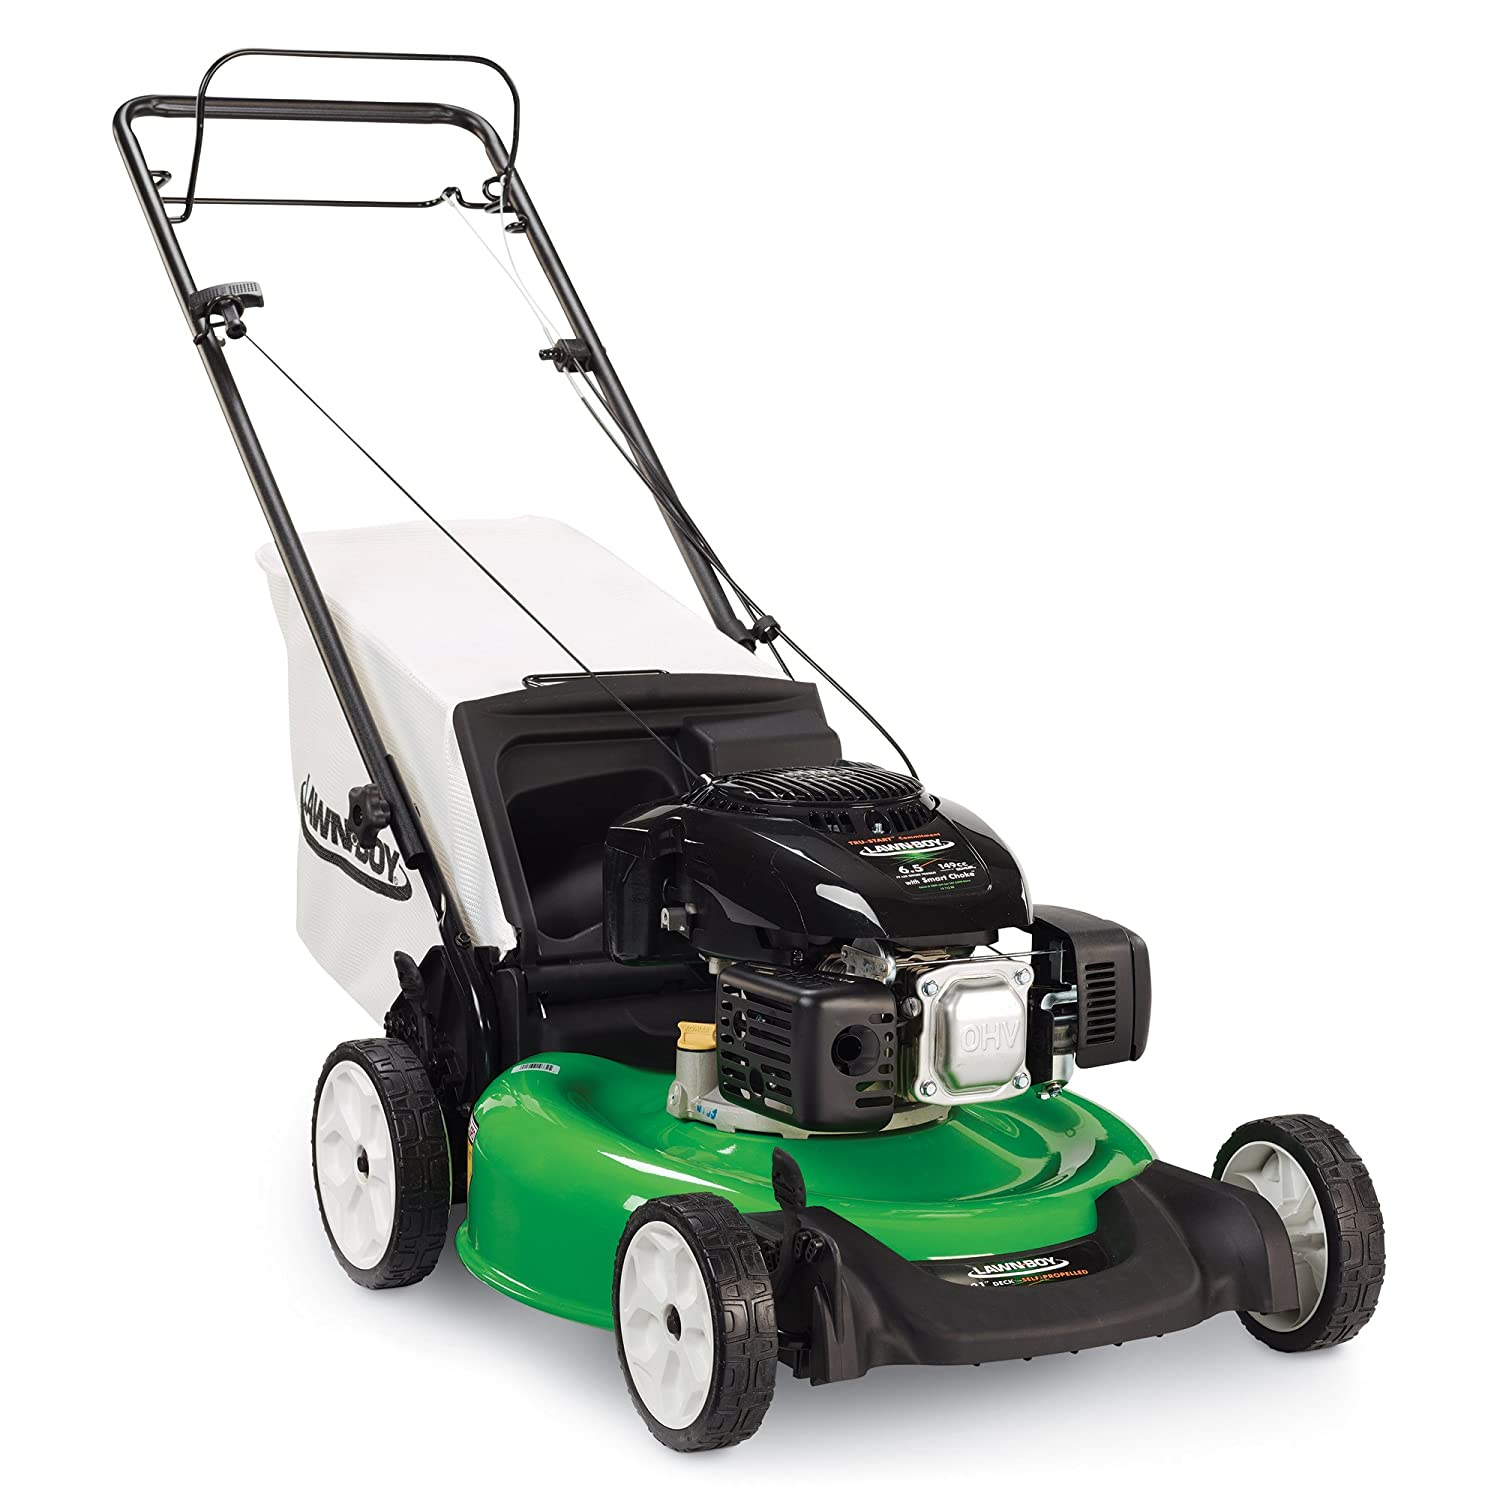 Lawn Boy 17732 Self Propelled Lawn Mower Review